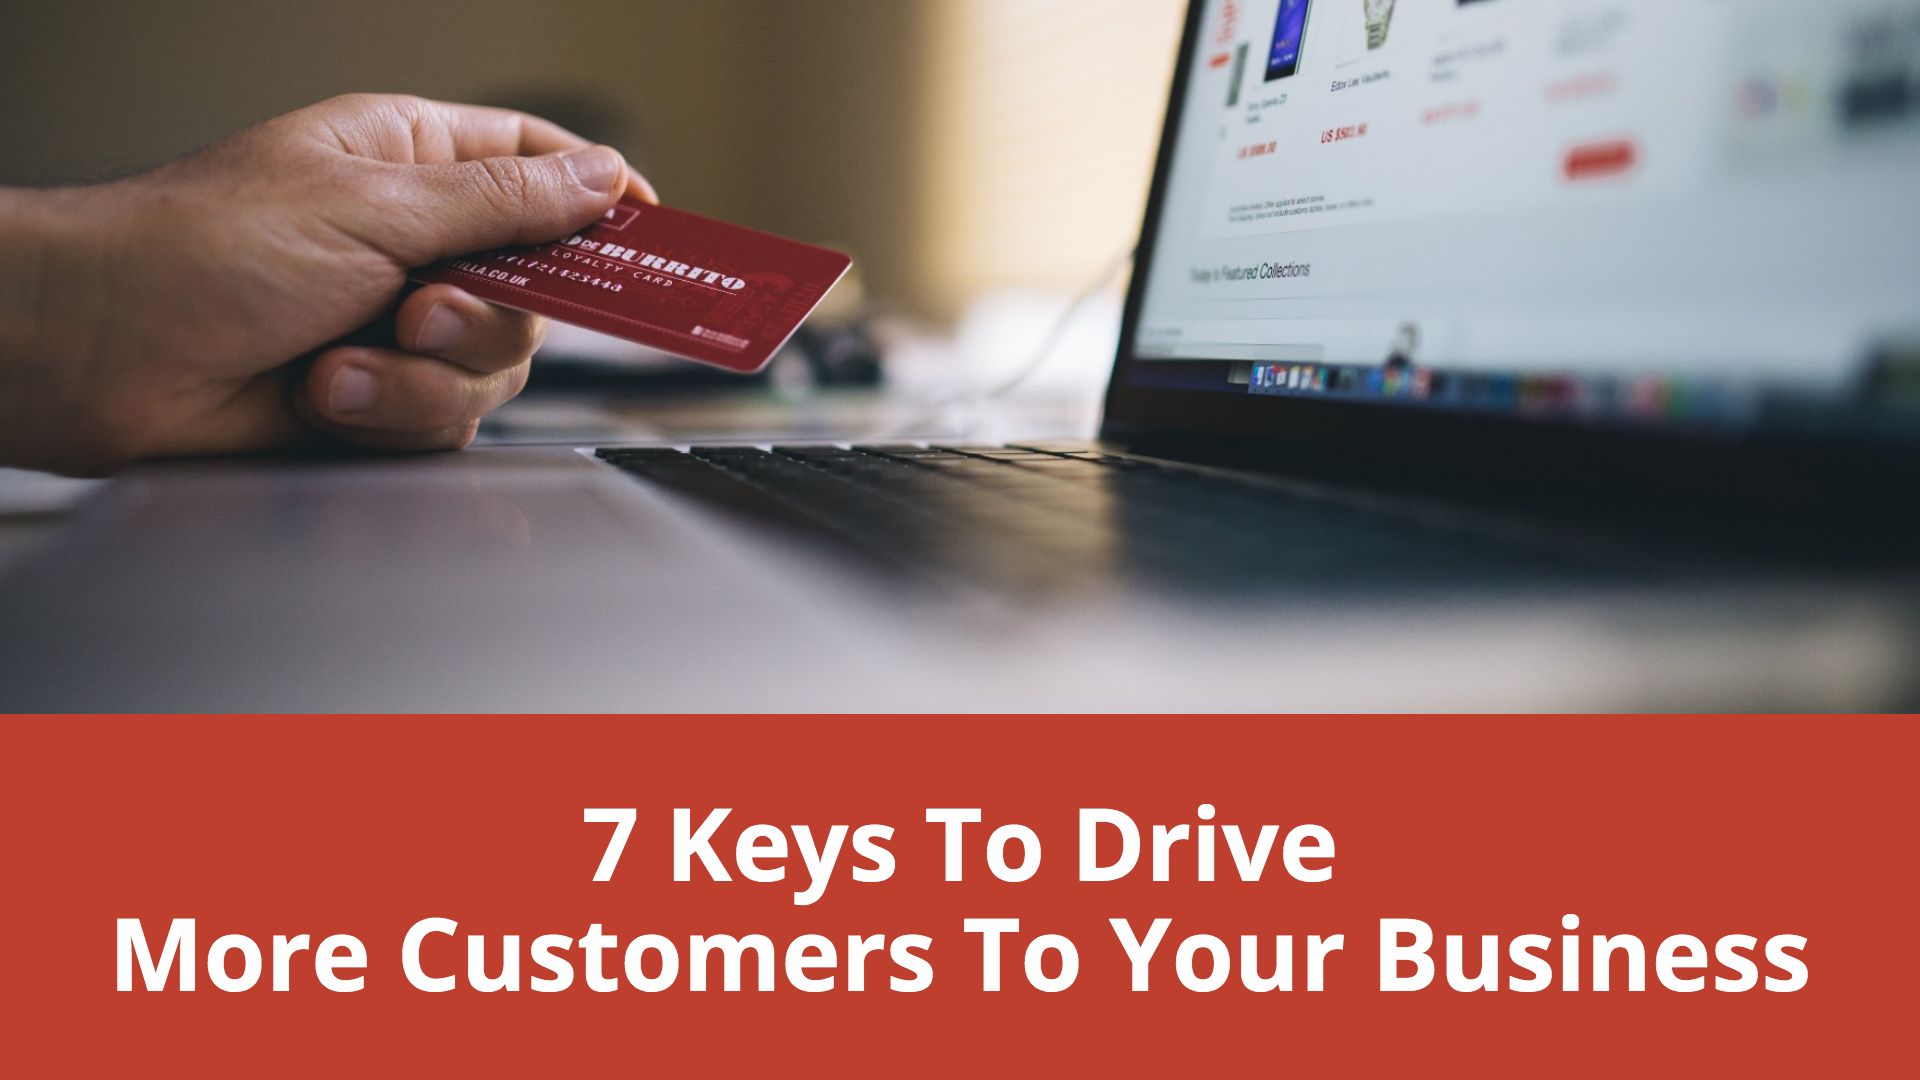 Image for 7 Keys To Driving More Customers To Your Business in 2020